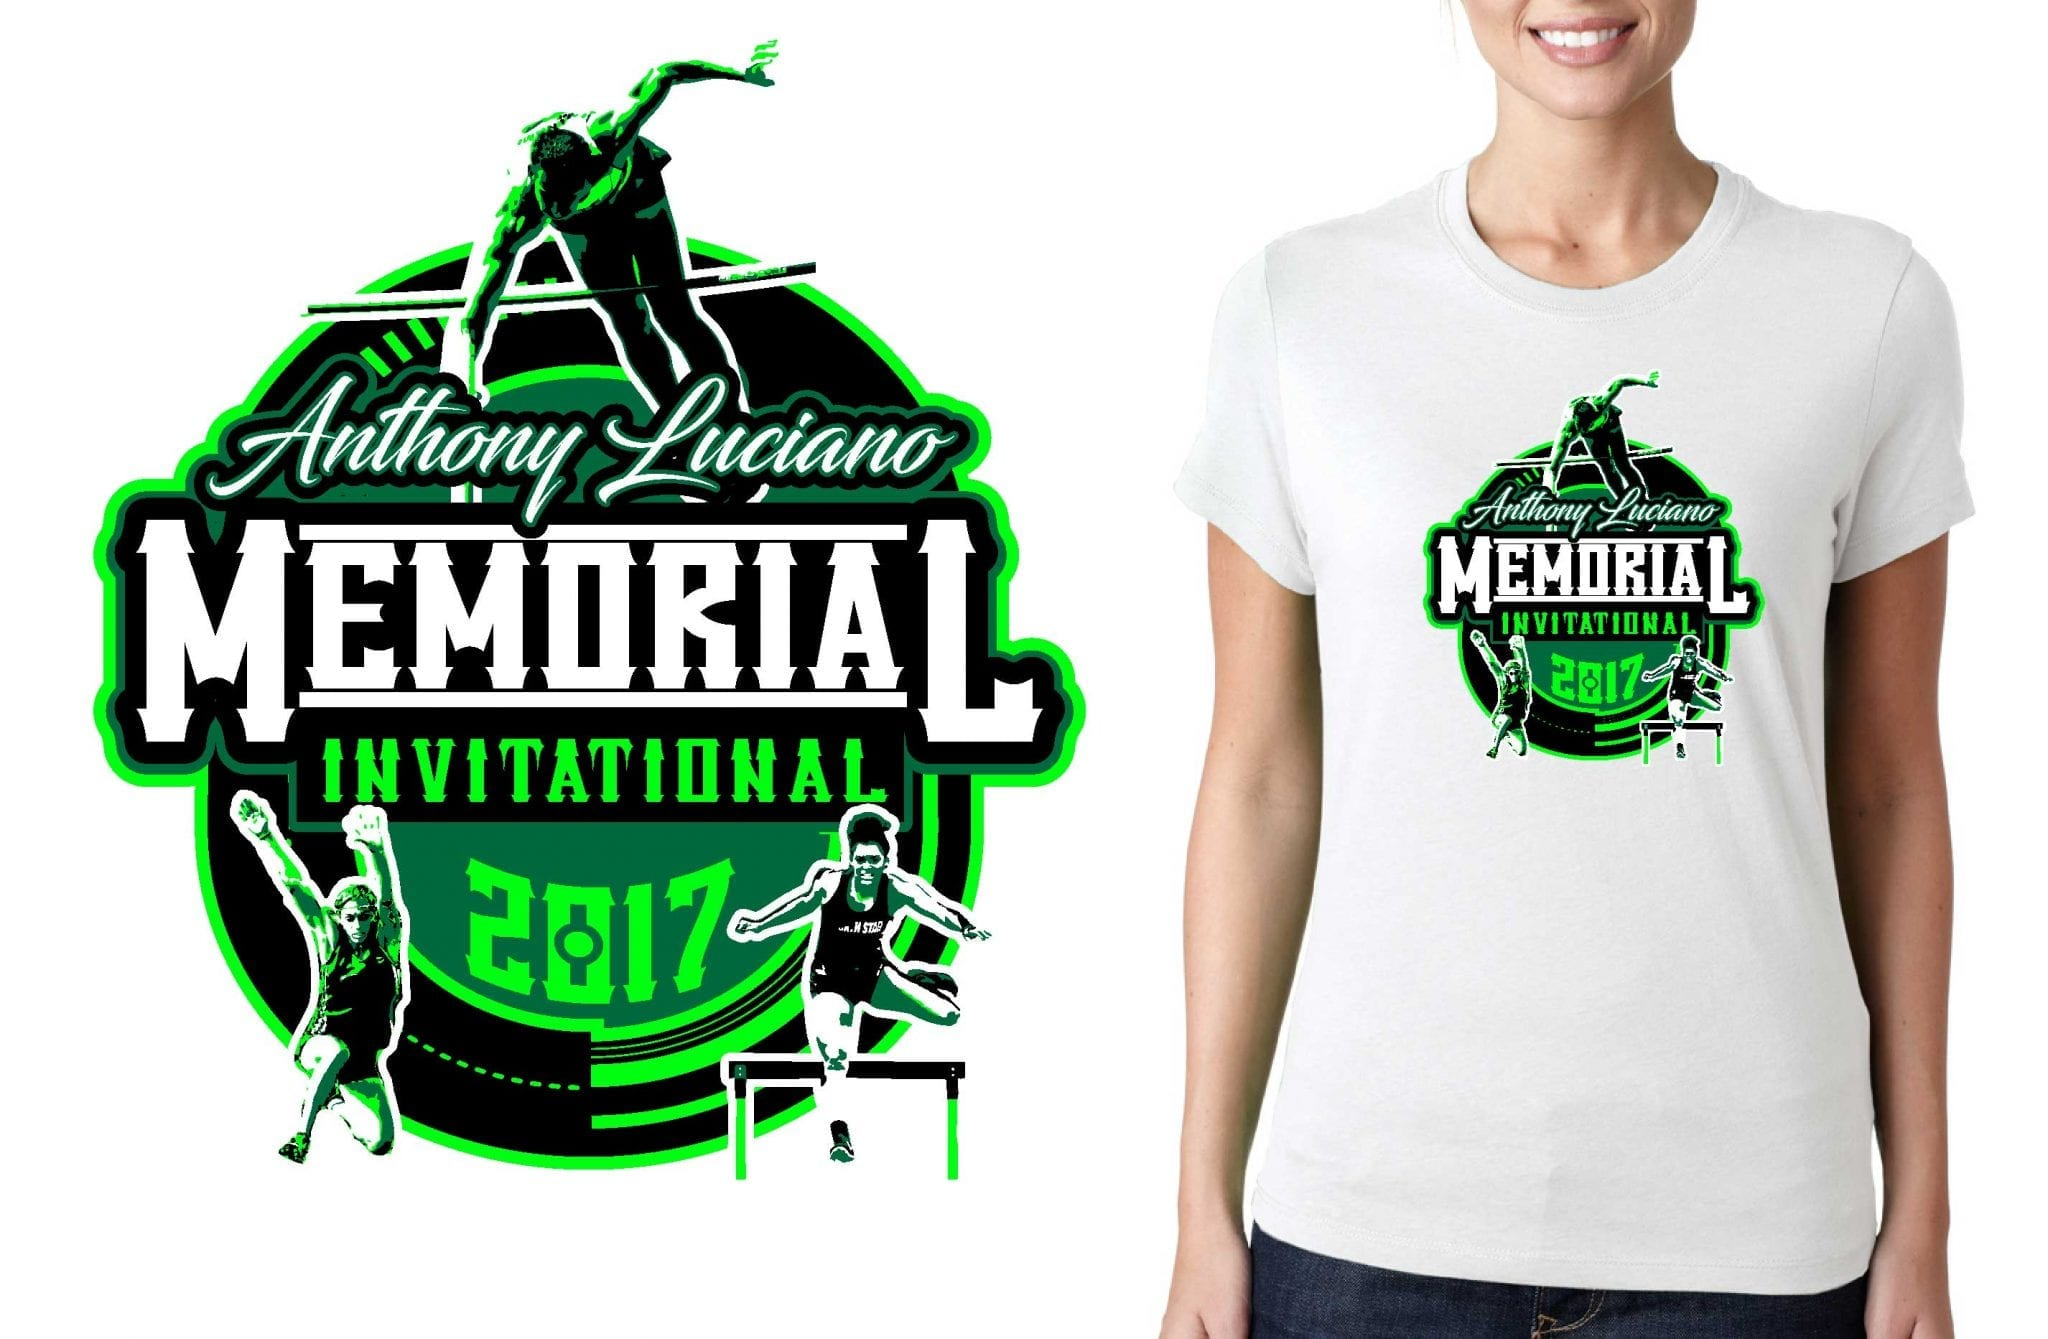 TRACK AND FIELD T-SHIRT LOGO DESIGN Anthony-Luciano-Memorial-Invitational-Tournament BY UrArtStudio